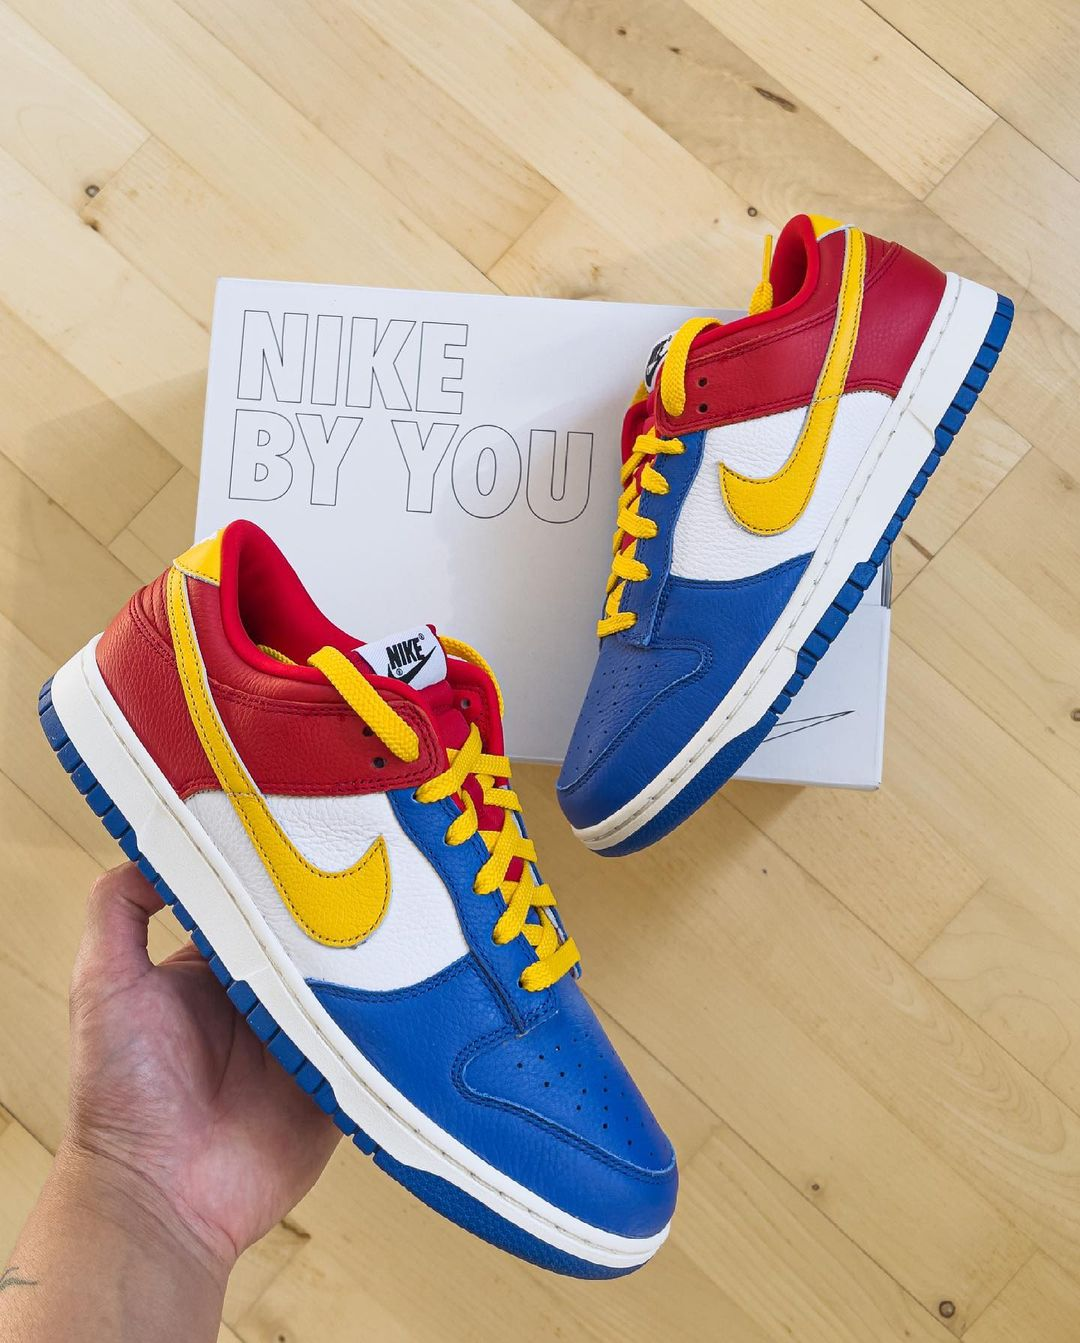 Nike Dunk Low by You Philippine og.jase